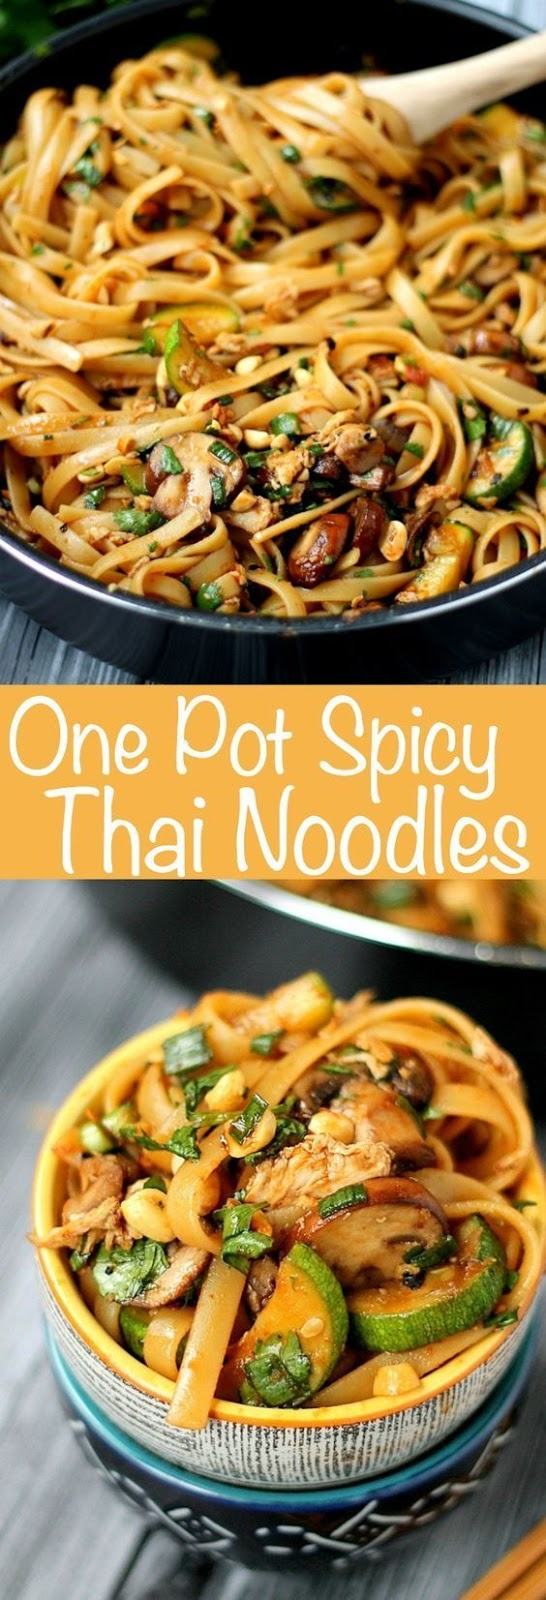 One Pot Spicy Thai Noodles #thainoodles #noodle #noodlerecipes #thailandfood #vegetarianrecipes